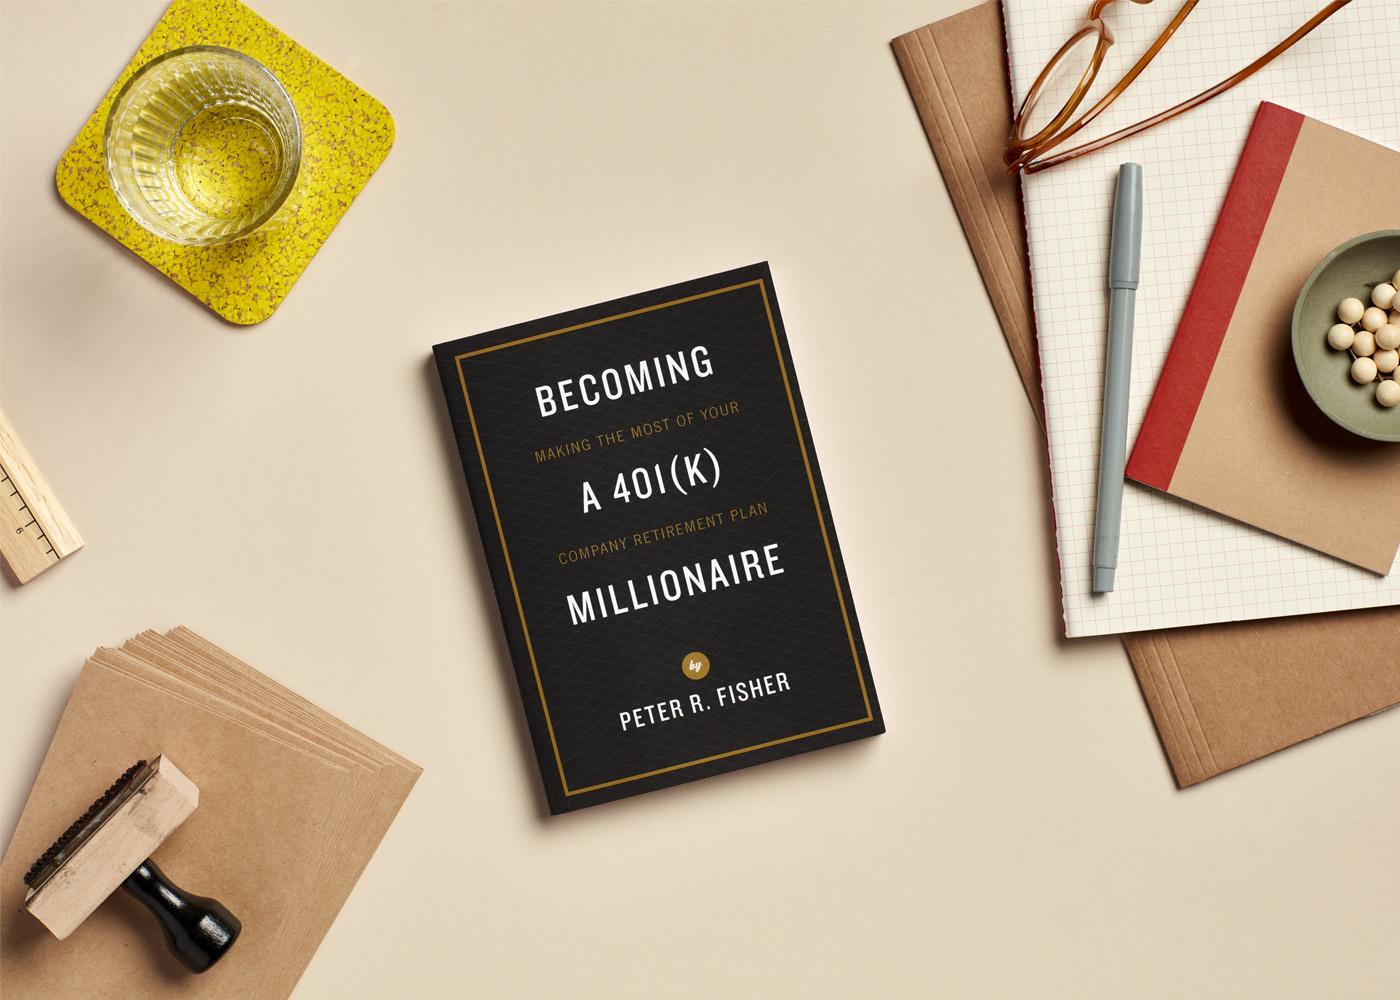 BECOMING A 401(K) MILLIONAIRE - No matter what stage of life you're in,you can make the most out of your company retirement plan.